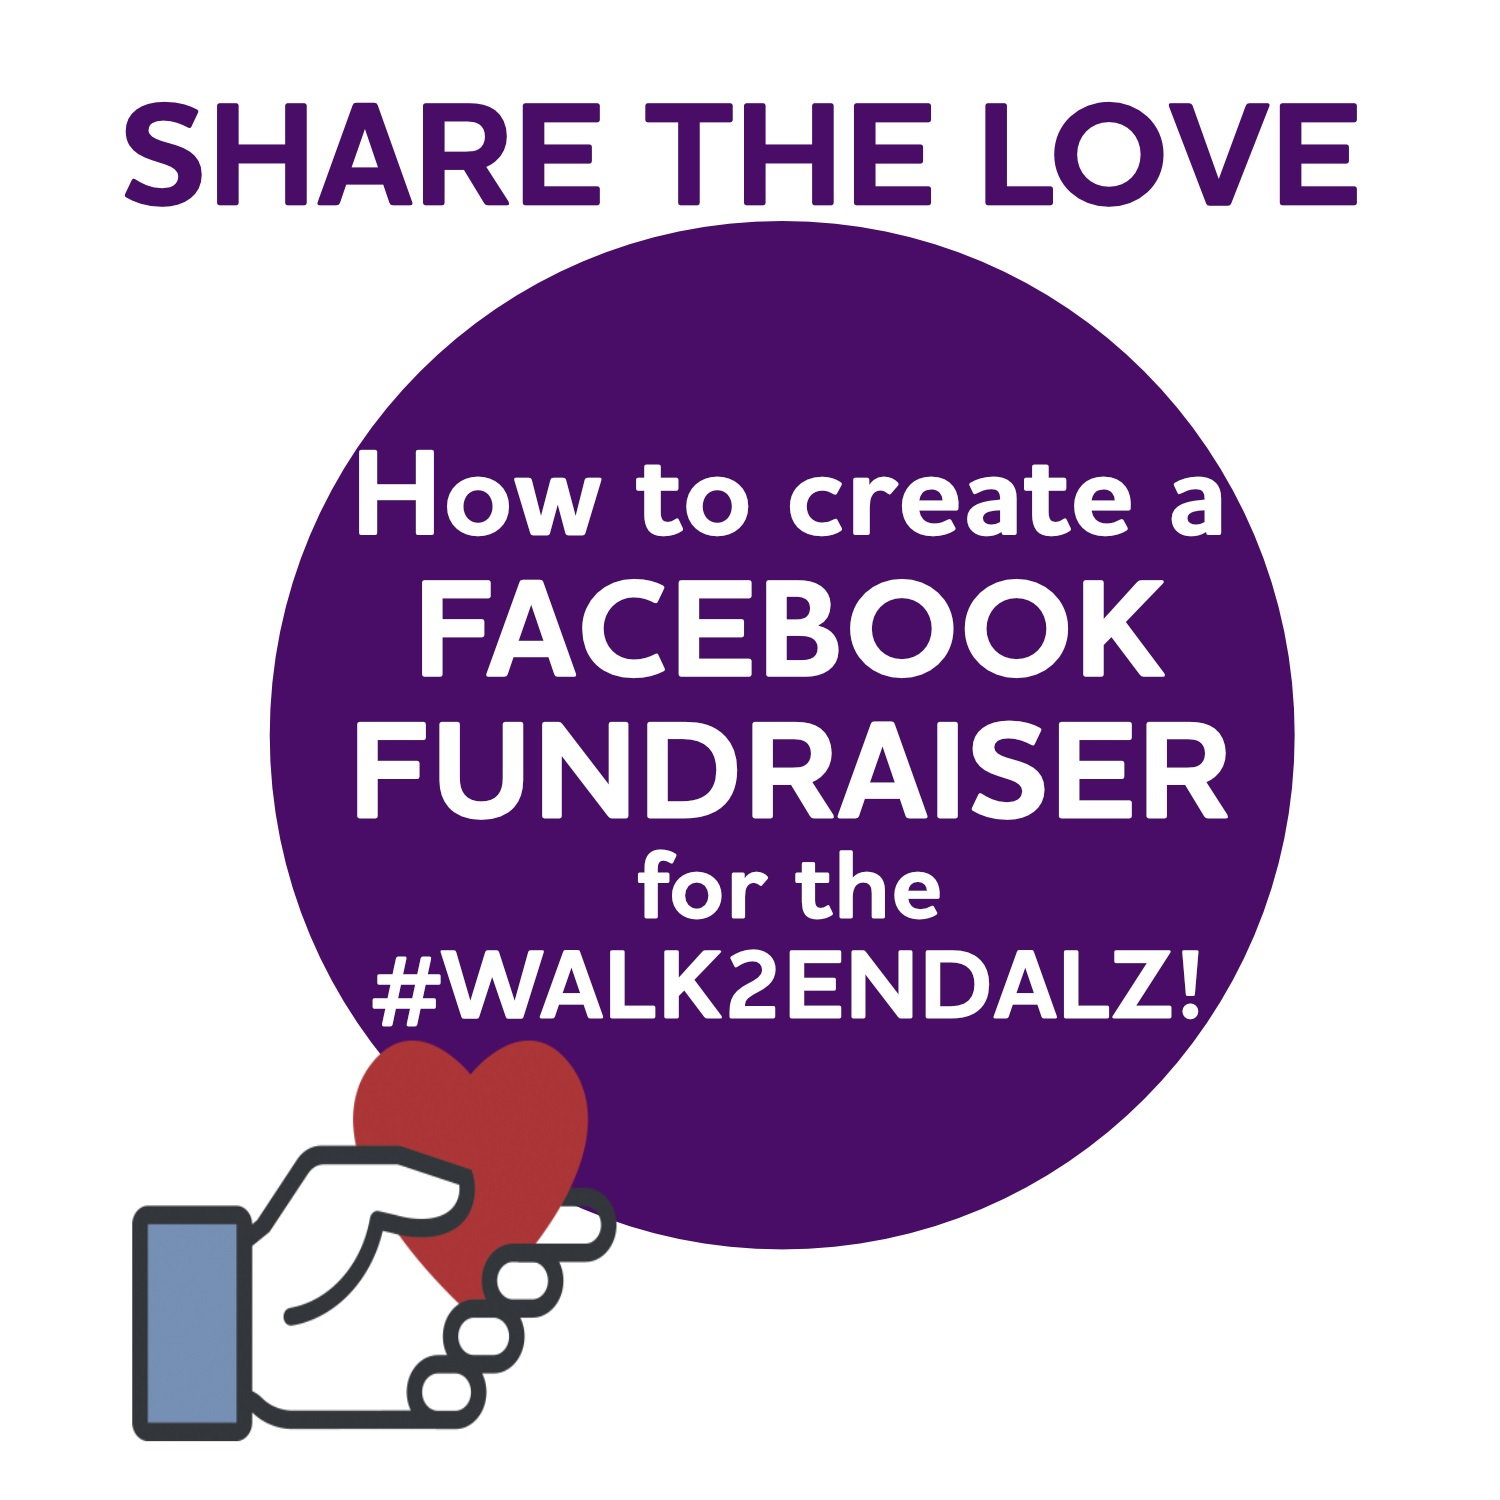 How to Create Facebook Fundraiser